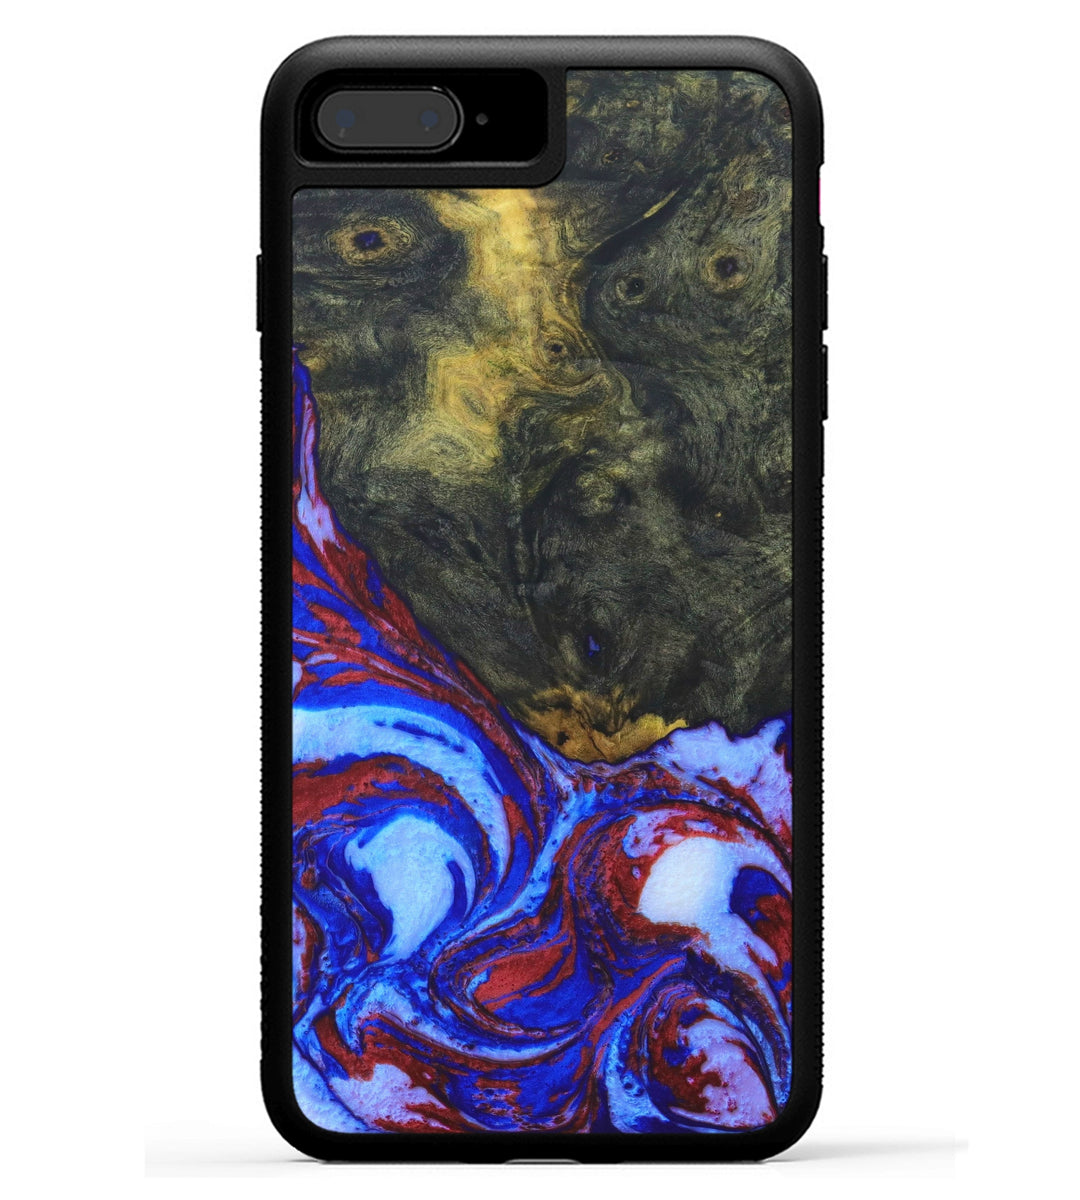 iPhone 8 Plus Wood+Resin Case - Erlene (Blue & Red, 333818)